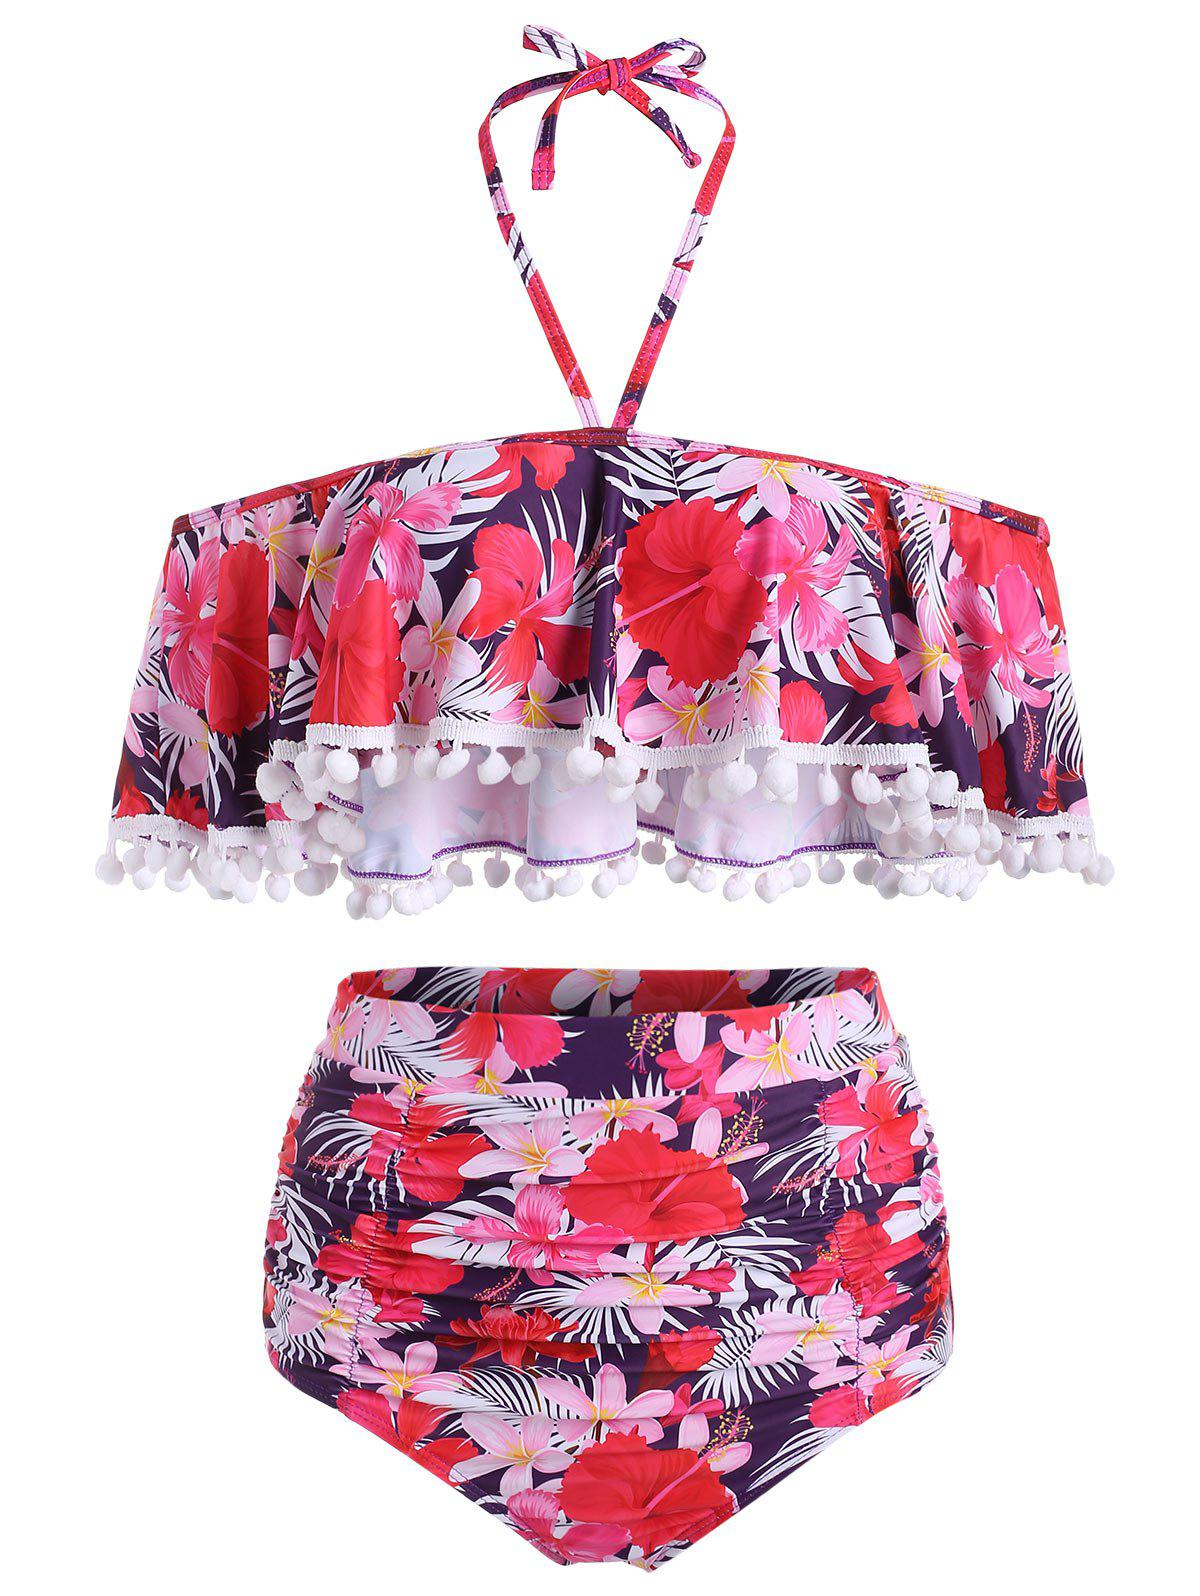 Affordable Pom-pom Floral Flounce High Waisted Bikini Swimsuit